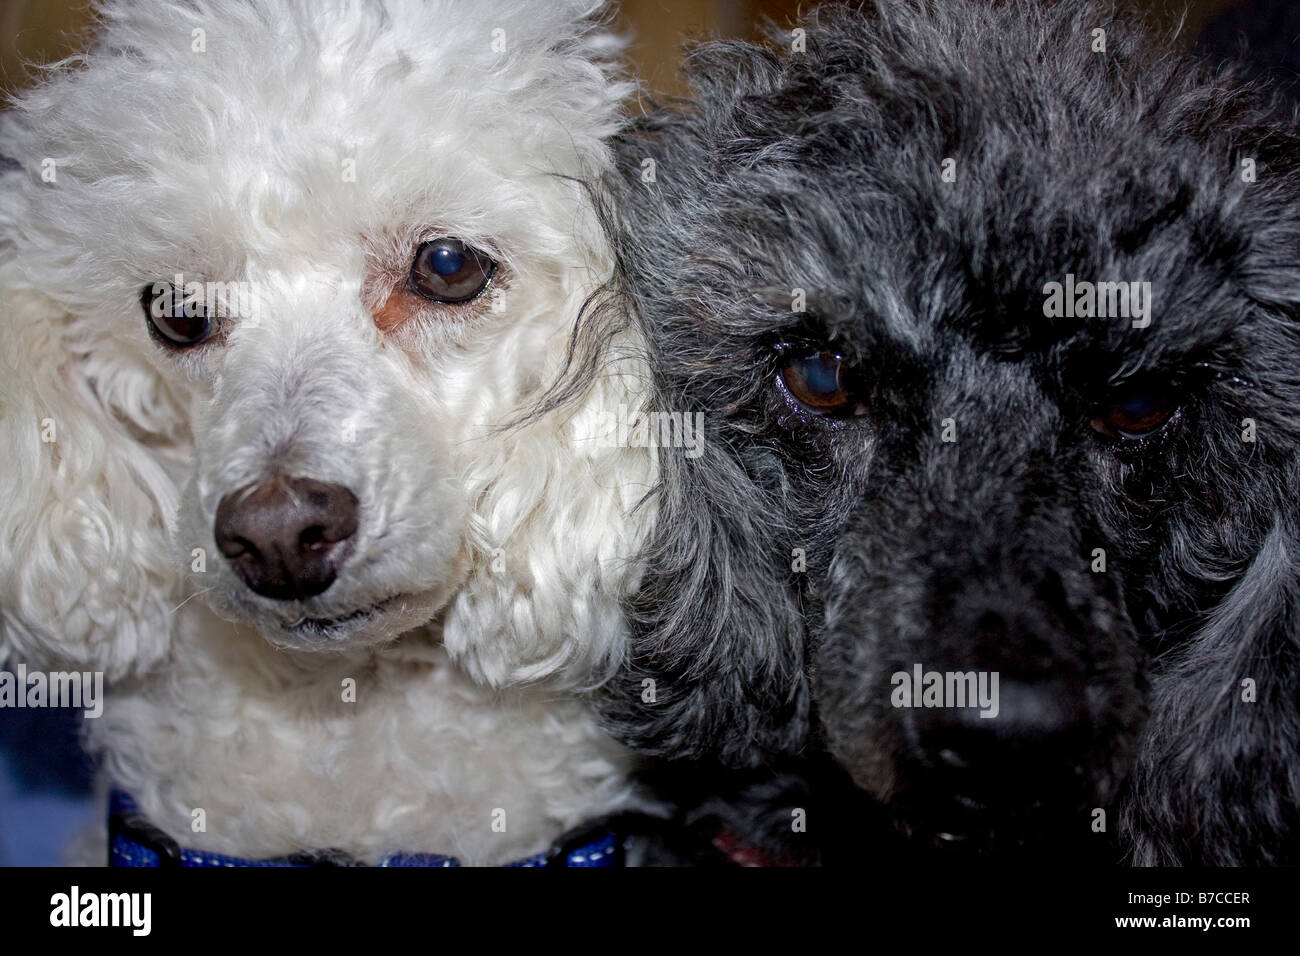 Black and white minature poodles sitting together - Stock Image